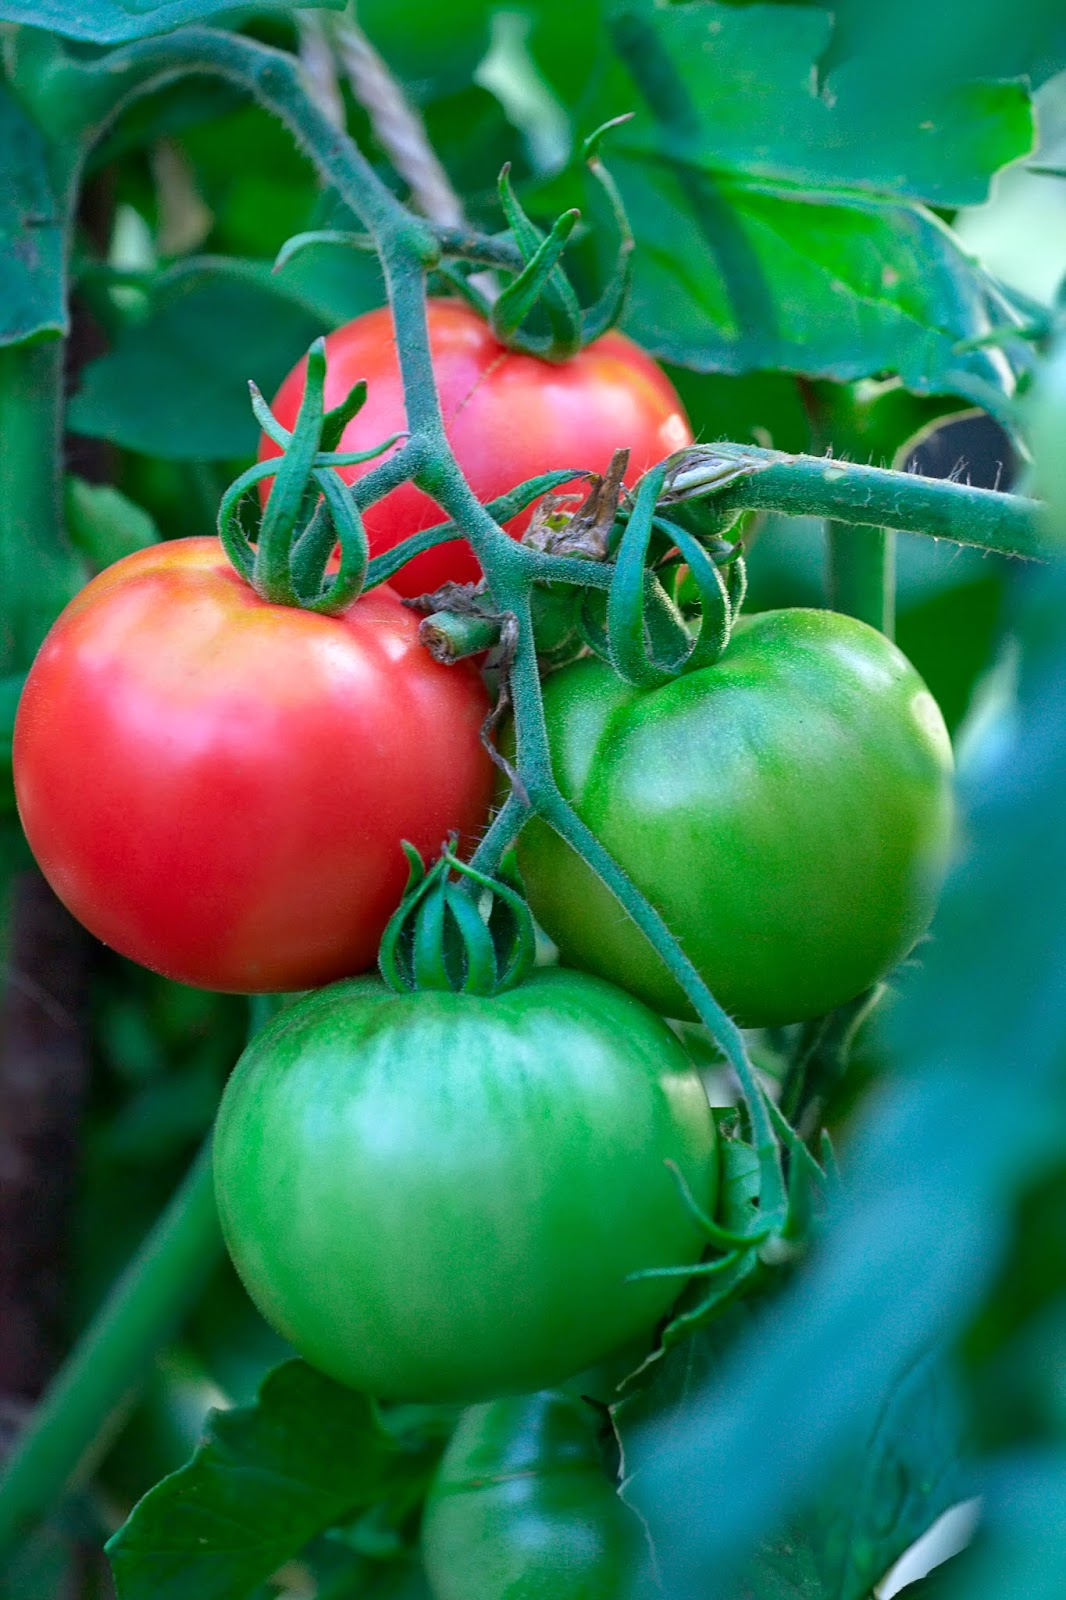 growing tomatoes in your back garden